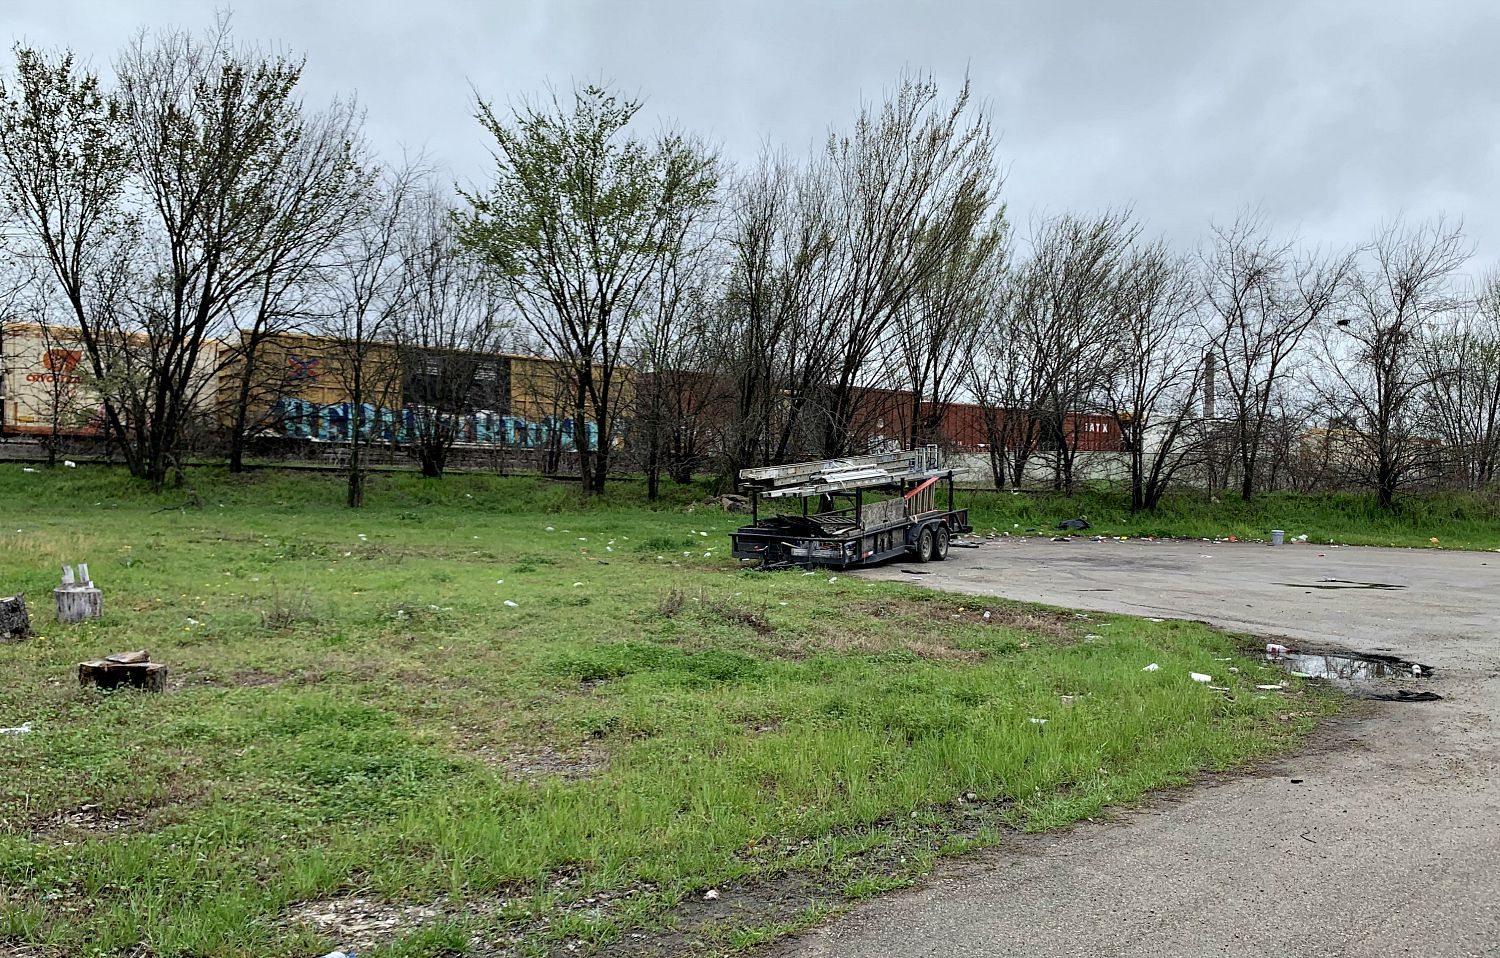 The view from 1906 Bayonne Street in West Dallas